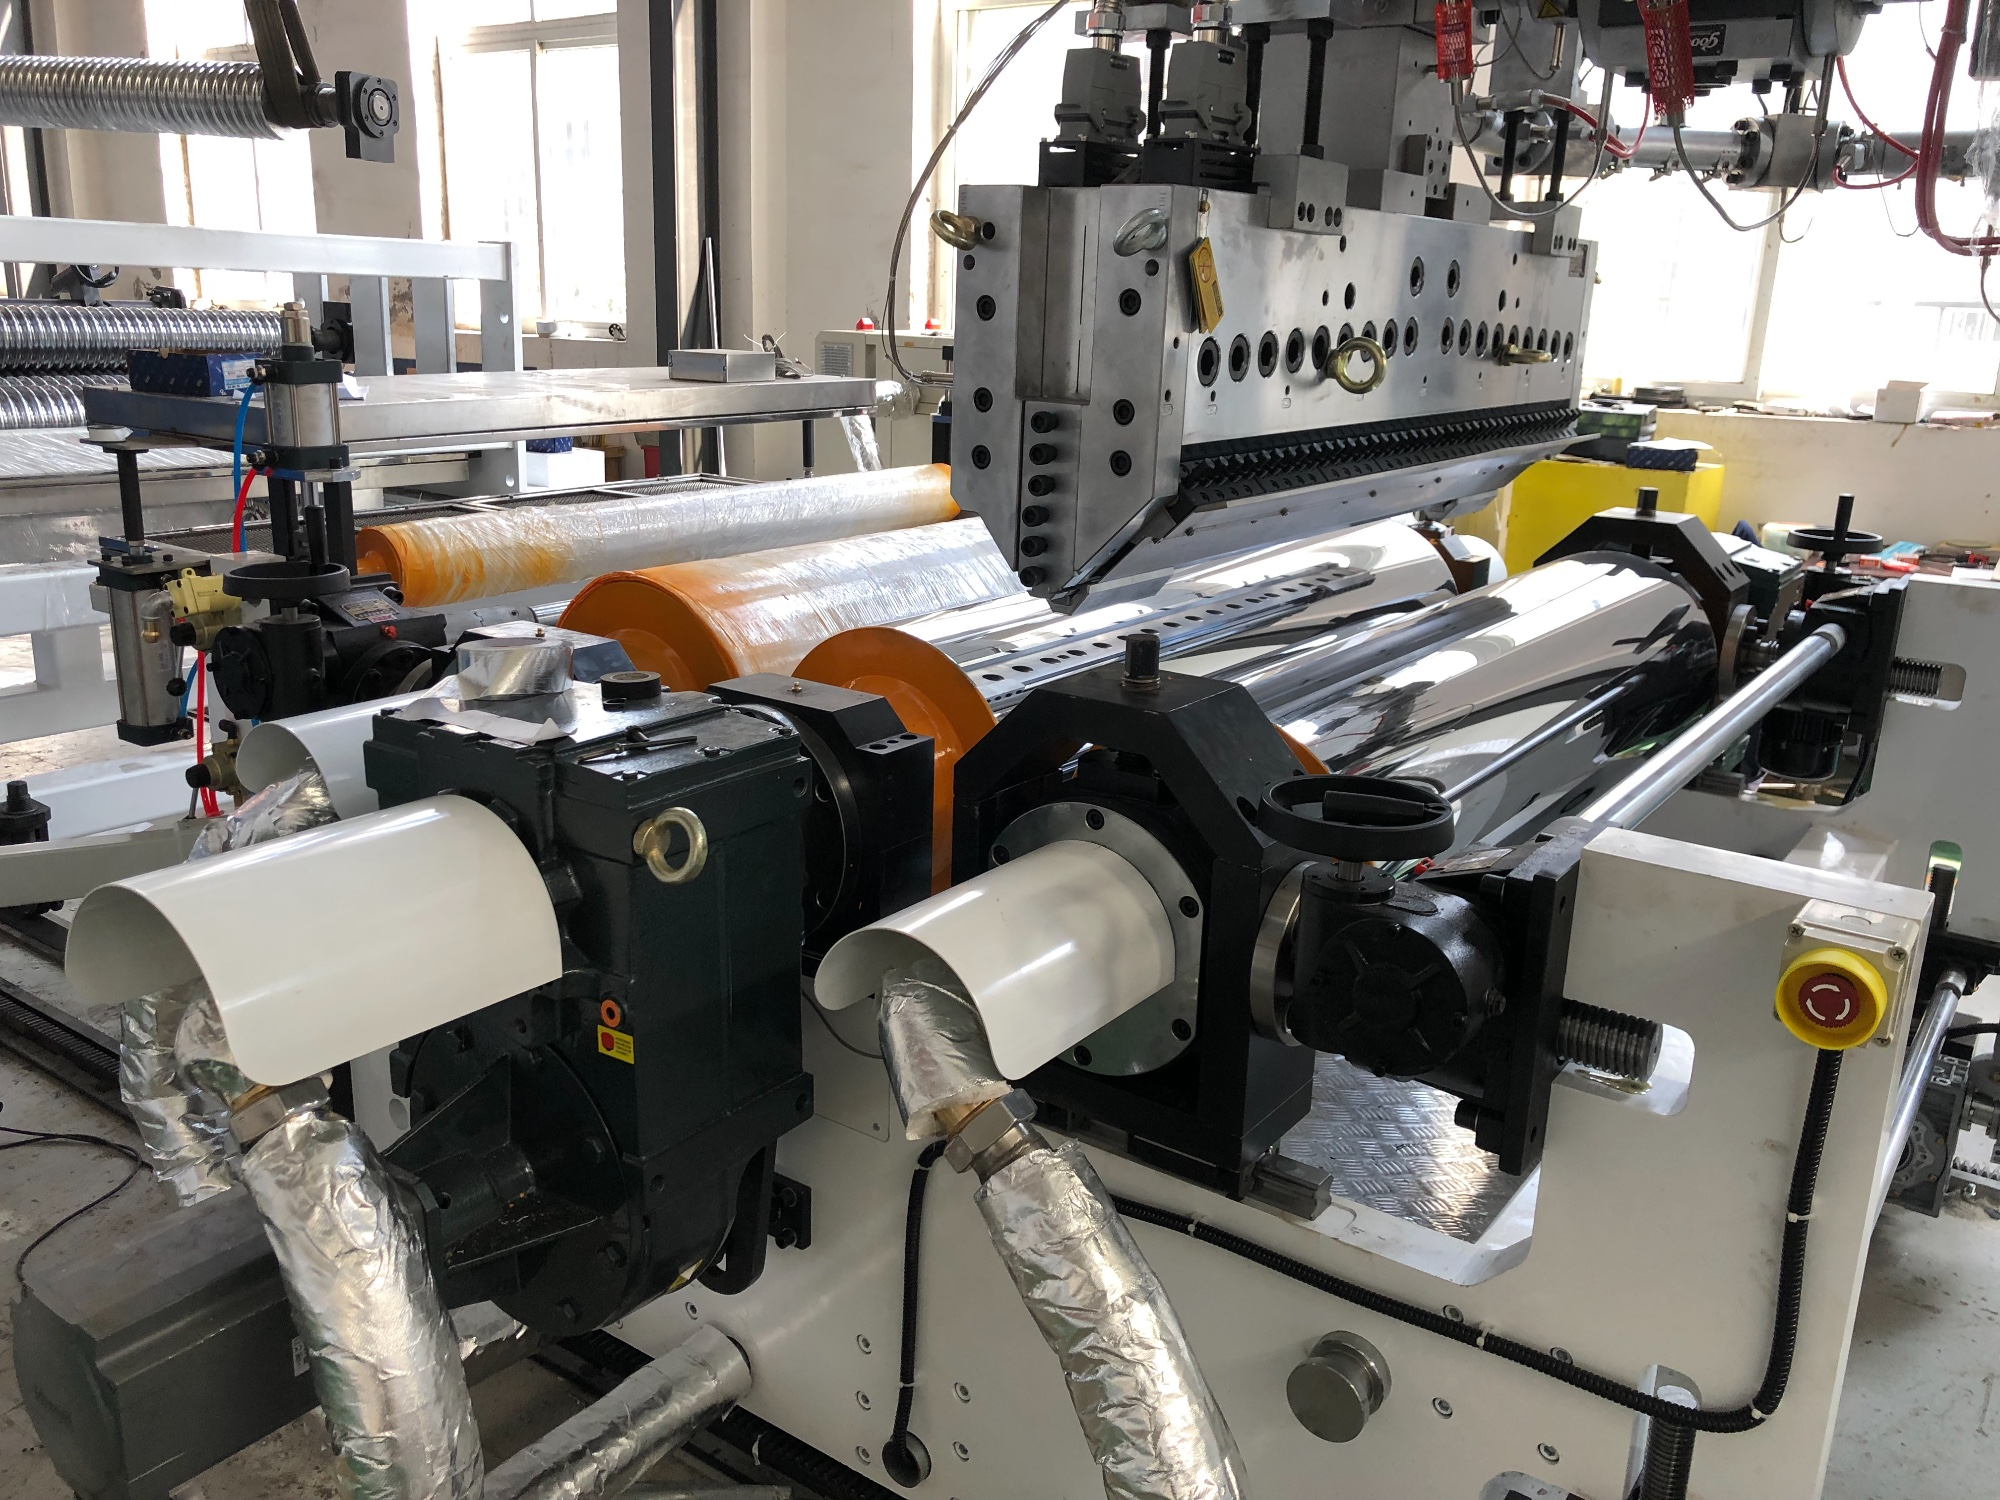 PC UV Plastic Corrugation Sheet Extrusion Machine Manufacturers, PC UV Plastic Corrugation Sheet Extrusion Machine Factory, Supply PC UV Plastic Corrugation Sheet Extrusion Machine